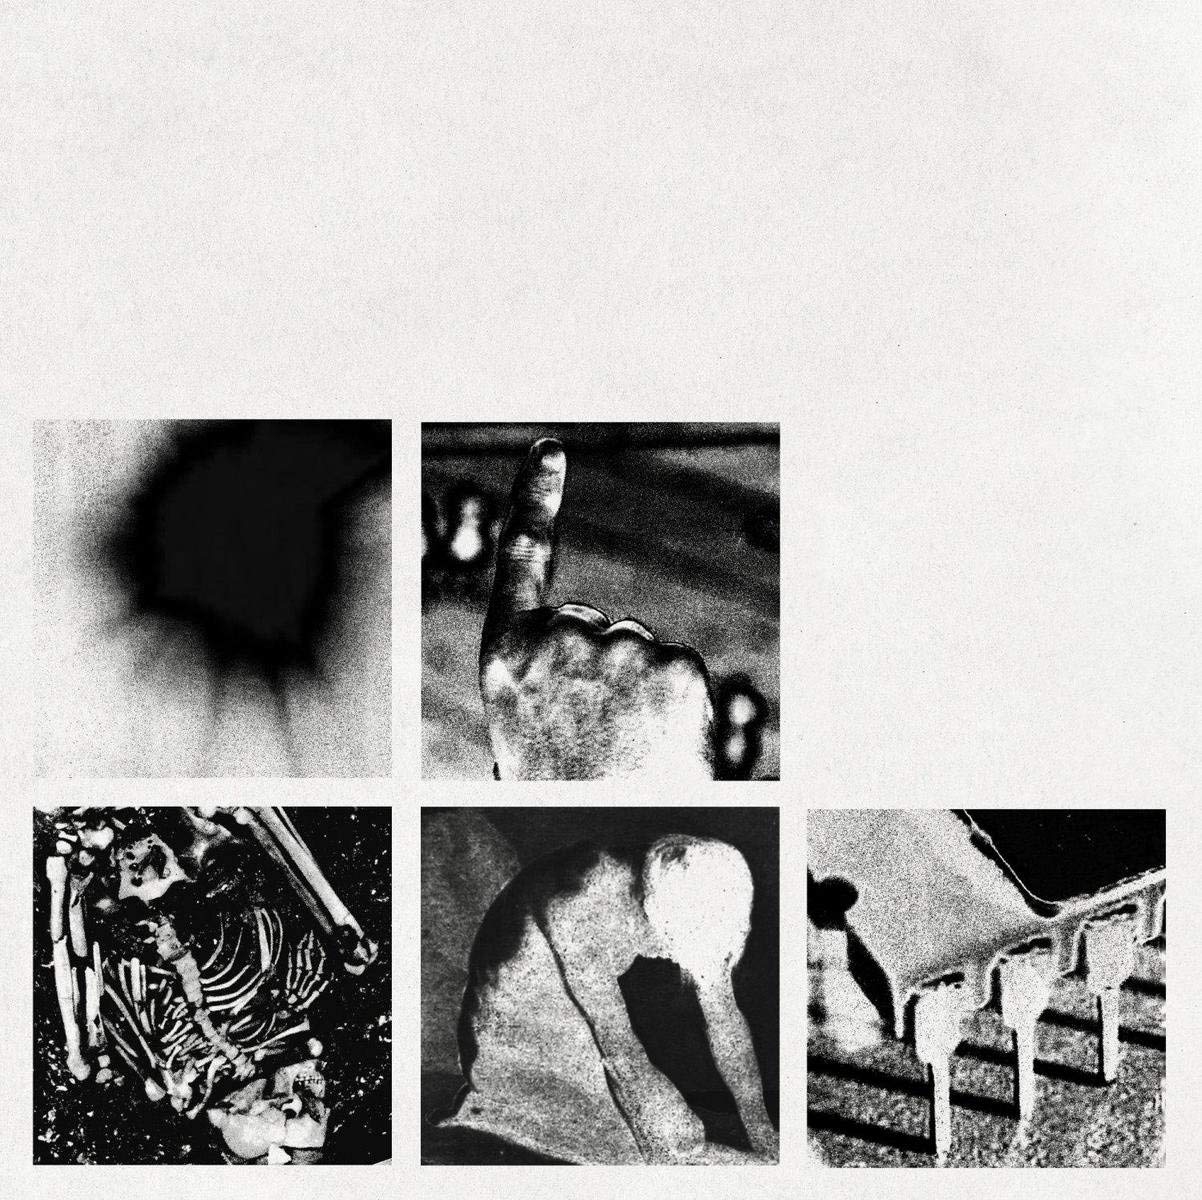 Nine Inch Nails: Bad Witch (2018) Book Cover